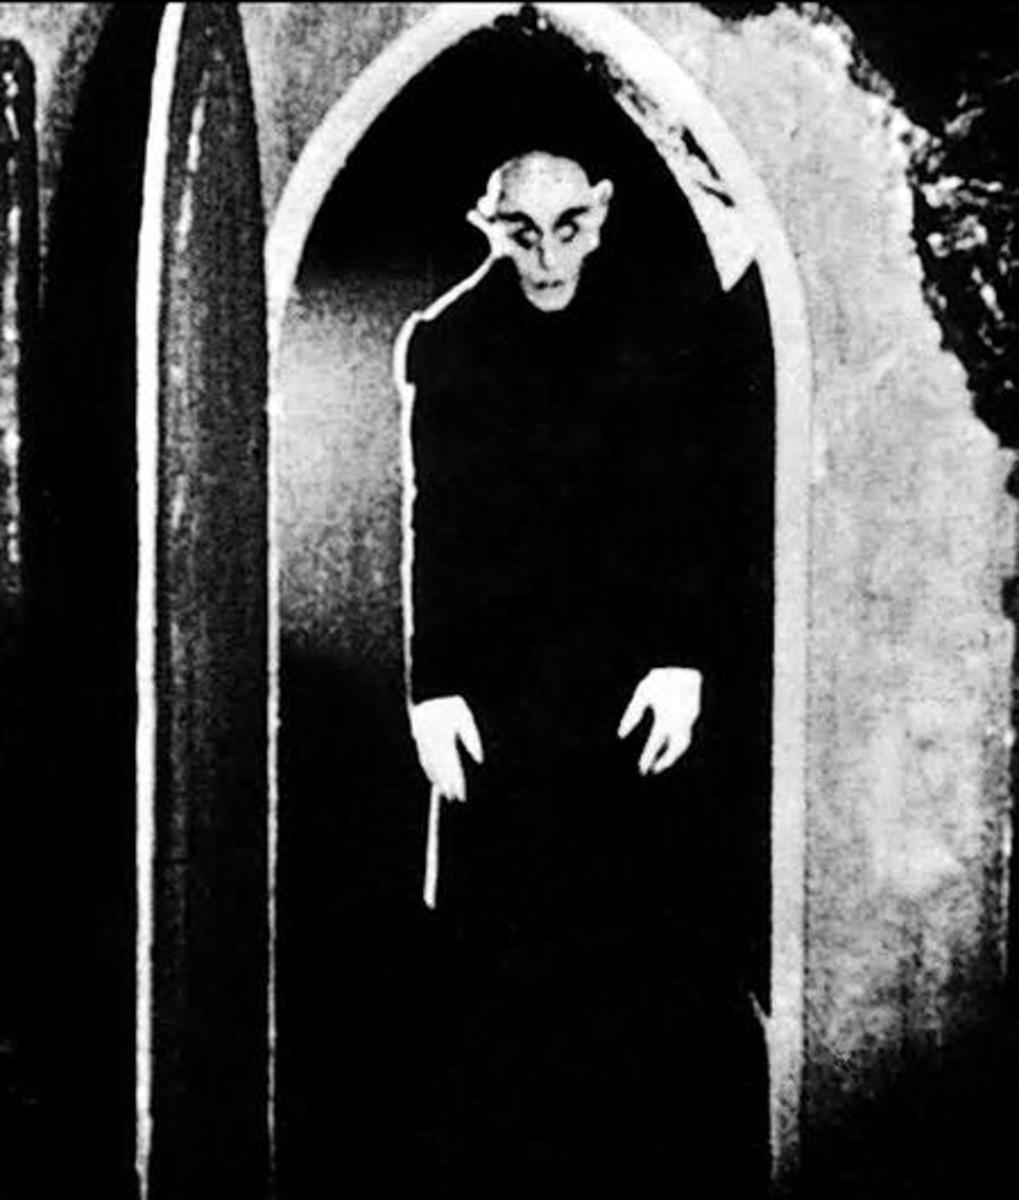 Nosferatu - the classic vampire at his cinematic creepiest